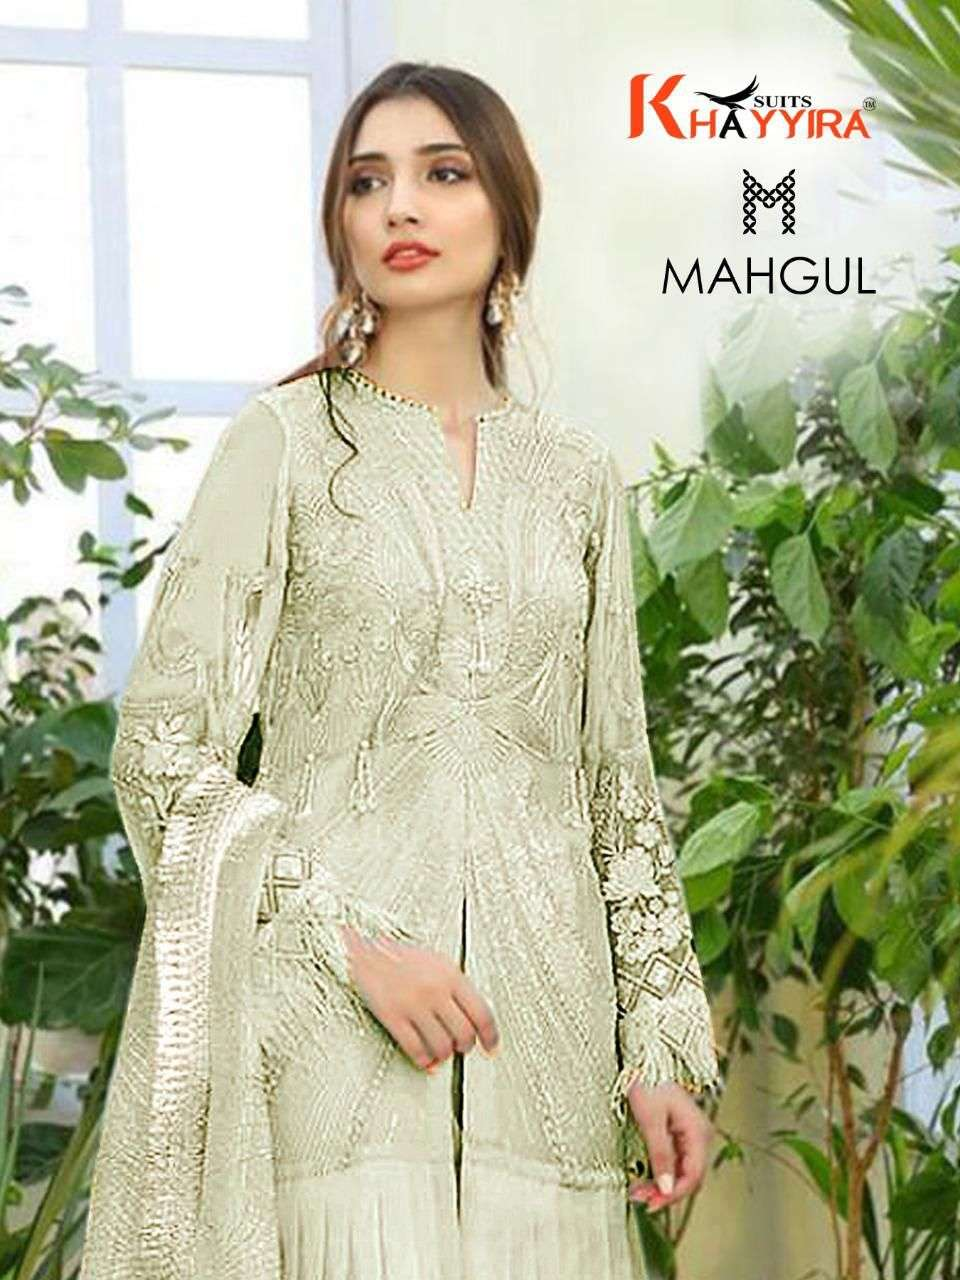 khayyira suits mahgul series 2001 butterfly net embroidered suit